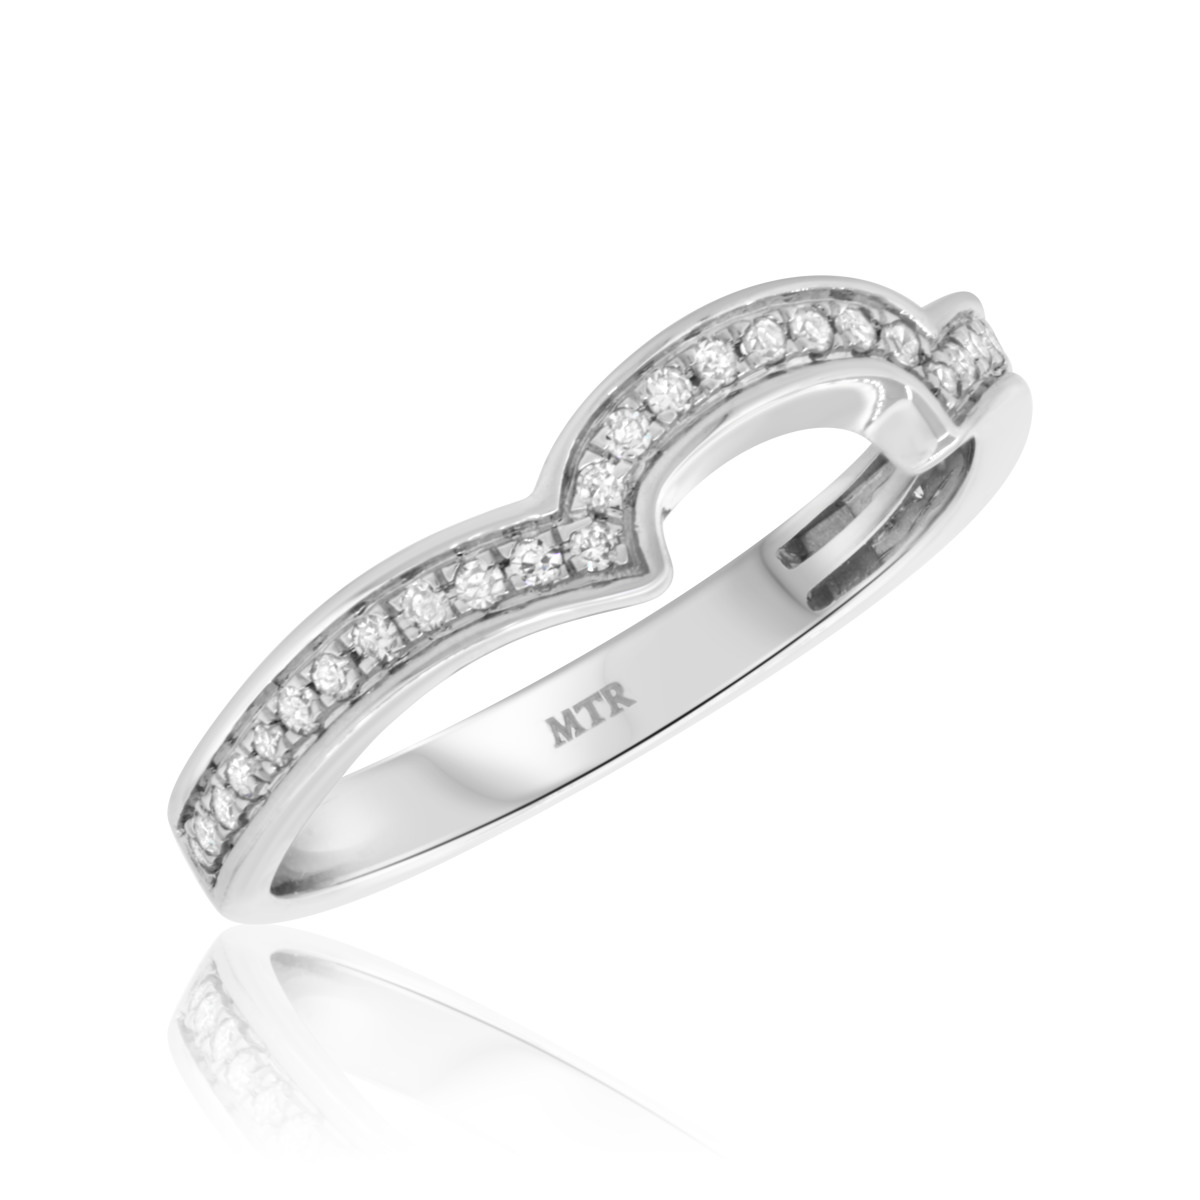 1/4 Carat T.W. Diamond Ladies Wedding Band  14K White Gold